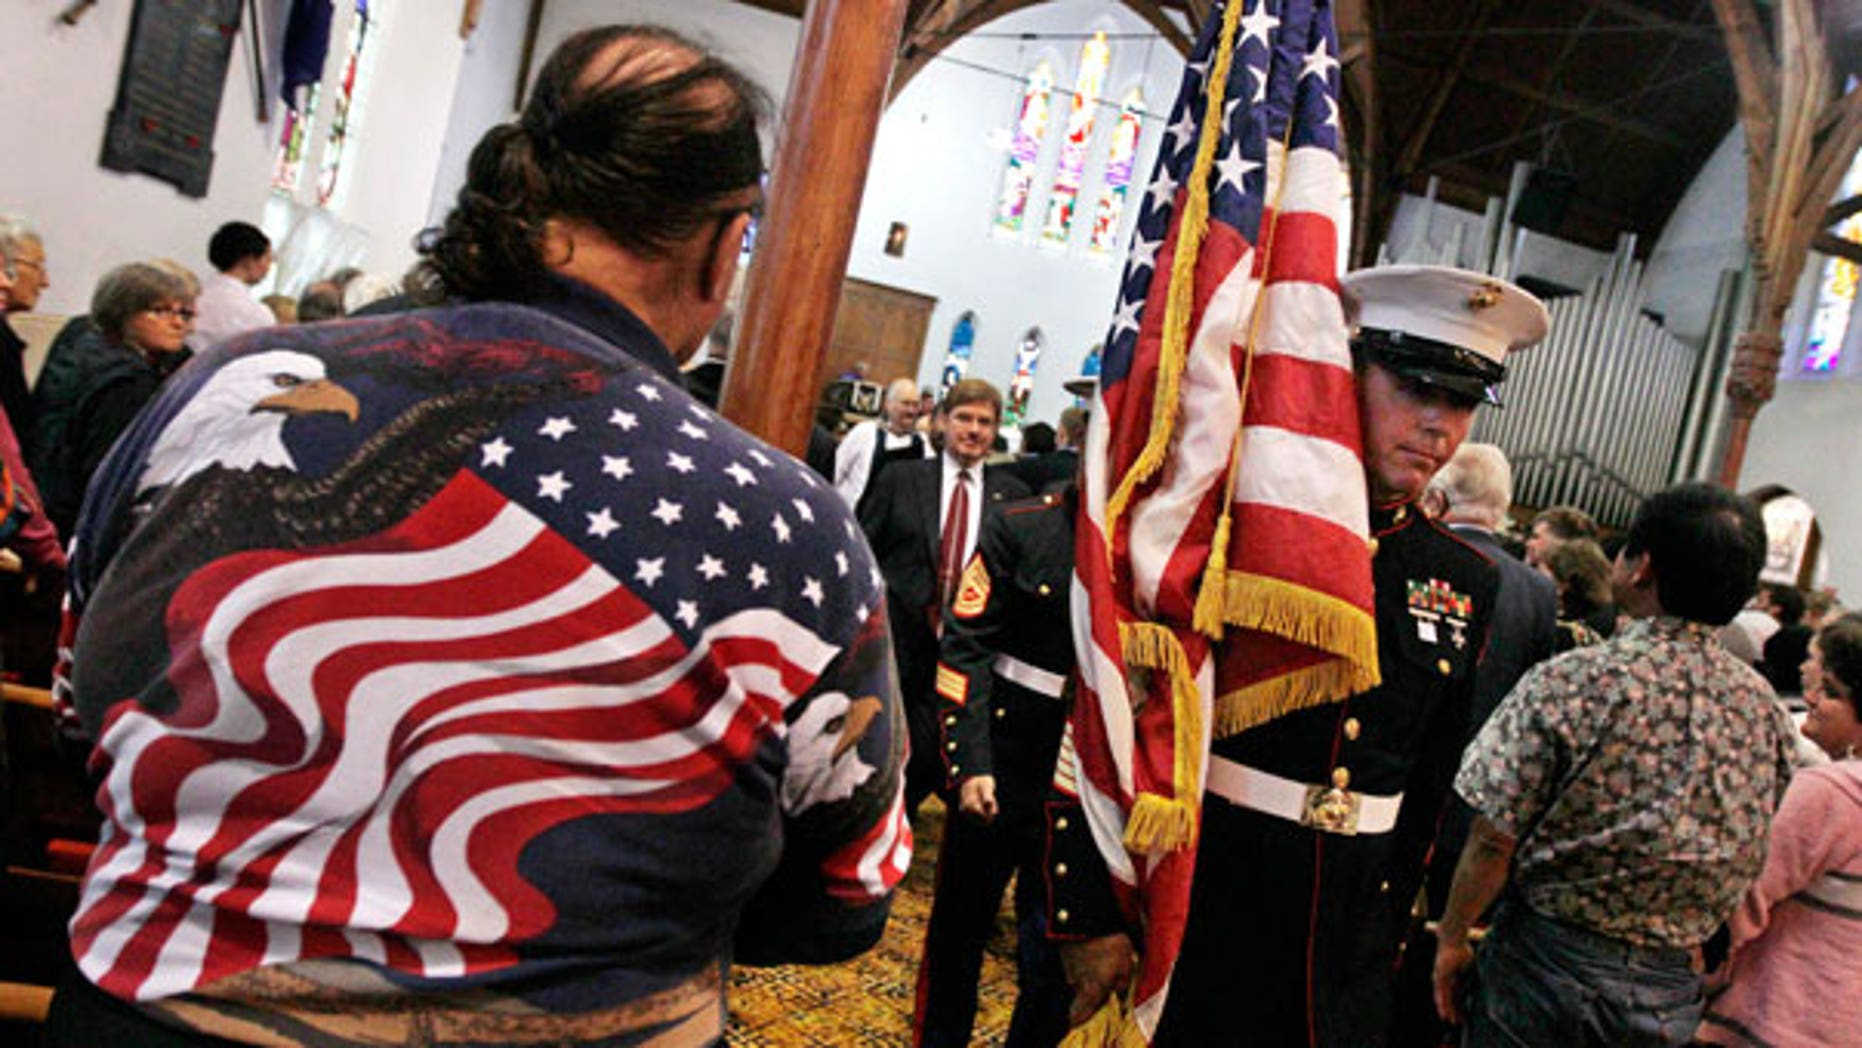 Sept. 11: A member of the U.S. Marines carries their national flag past a man wearing a stars and stripes shirt during a special service to commemorate the 10th anniversary of the Sept. 11 terrorist attacks, at a church in New Plymouth, New Zealand.